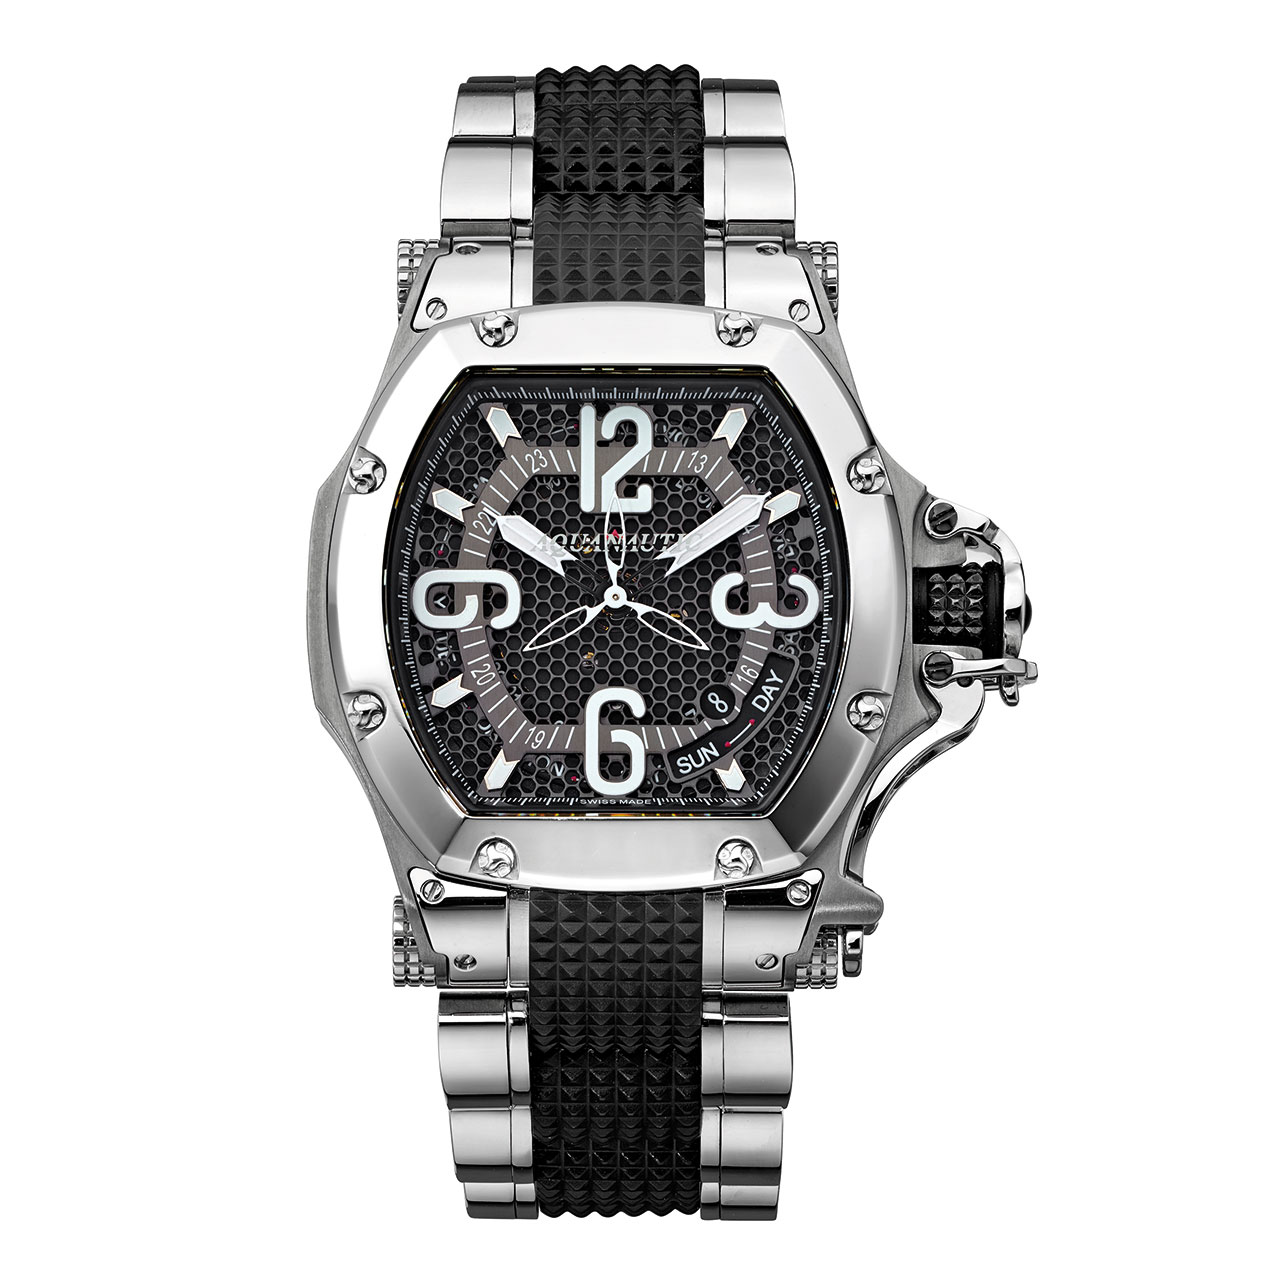 Aquanautic King Tonneau 3H Automatic Watch